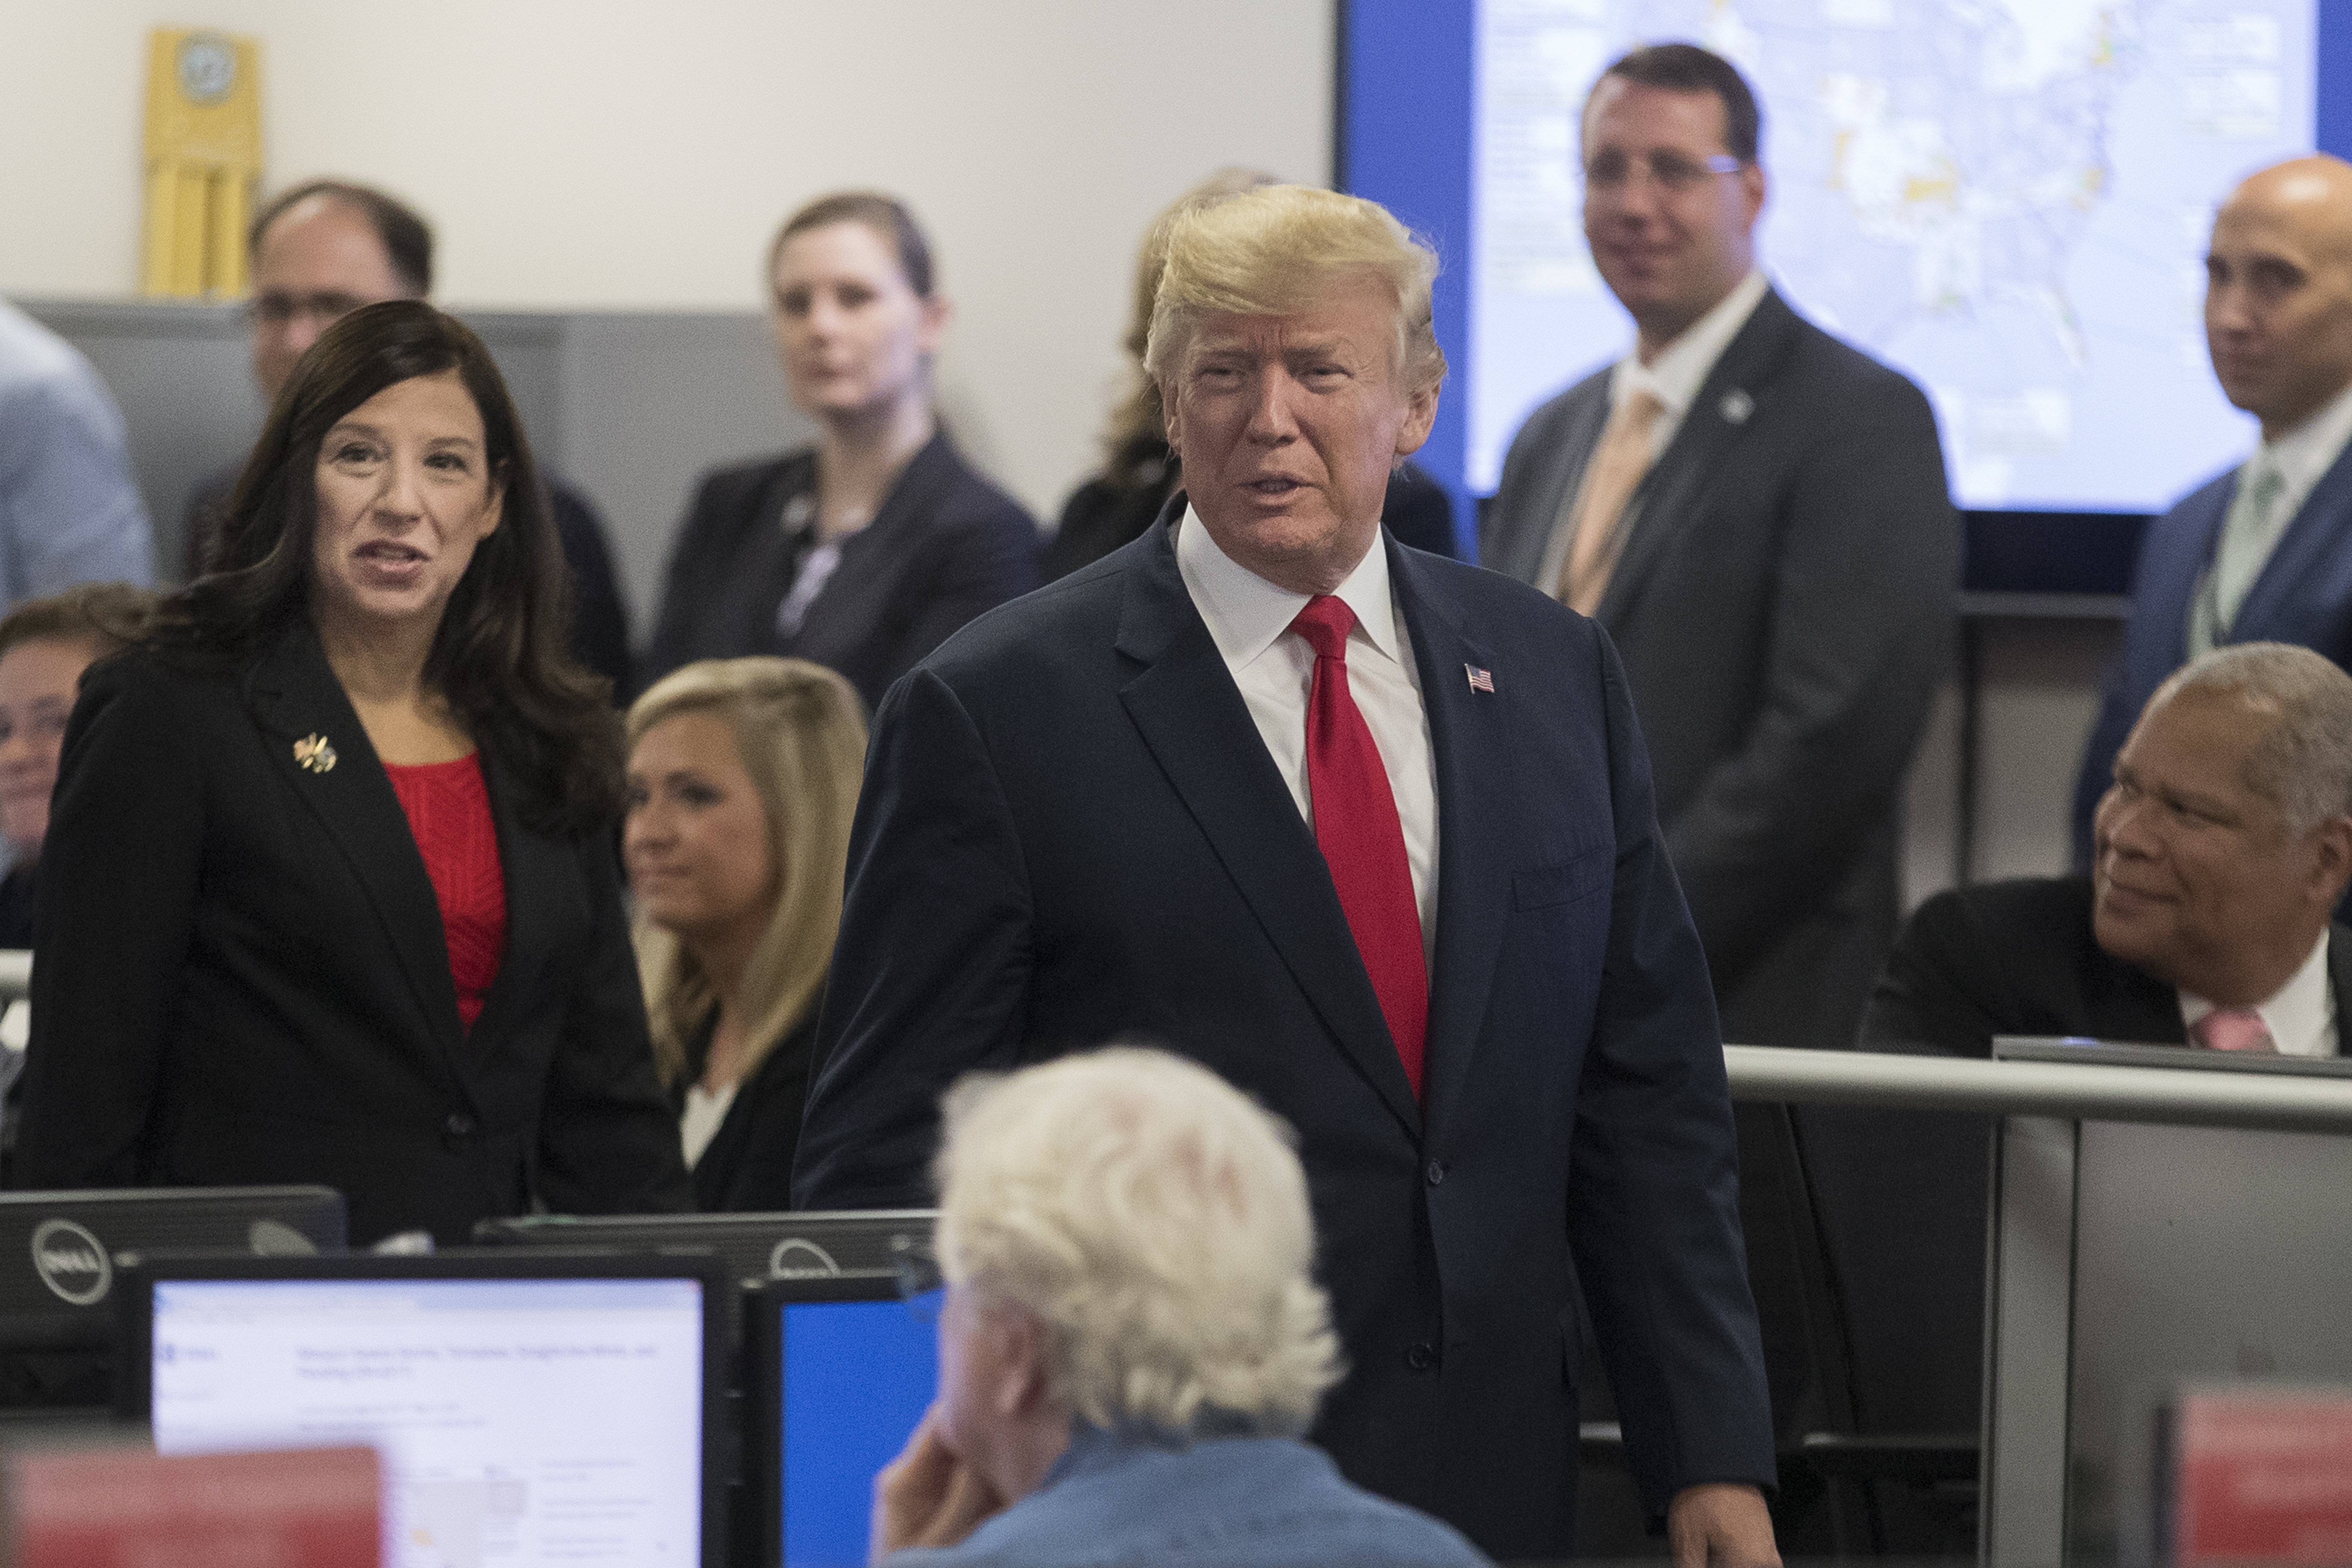 President Donald Trump visits the command center of the Federal Emergency Management Agency (FEMA) headquarters, beside Acting Director of the Department of Homeland Security Elaine Duke (L), in Washington on Aug. 4, 2017. (Michael Reynolds - Pool/Getty Images)